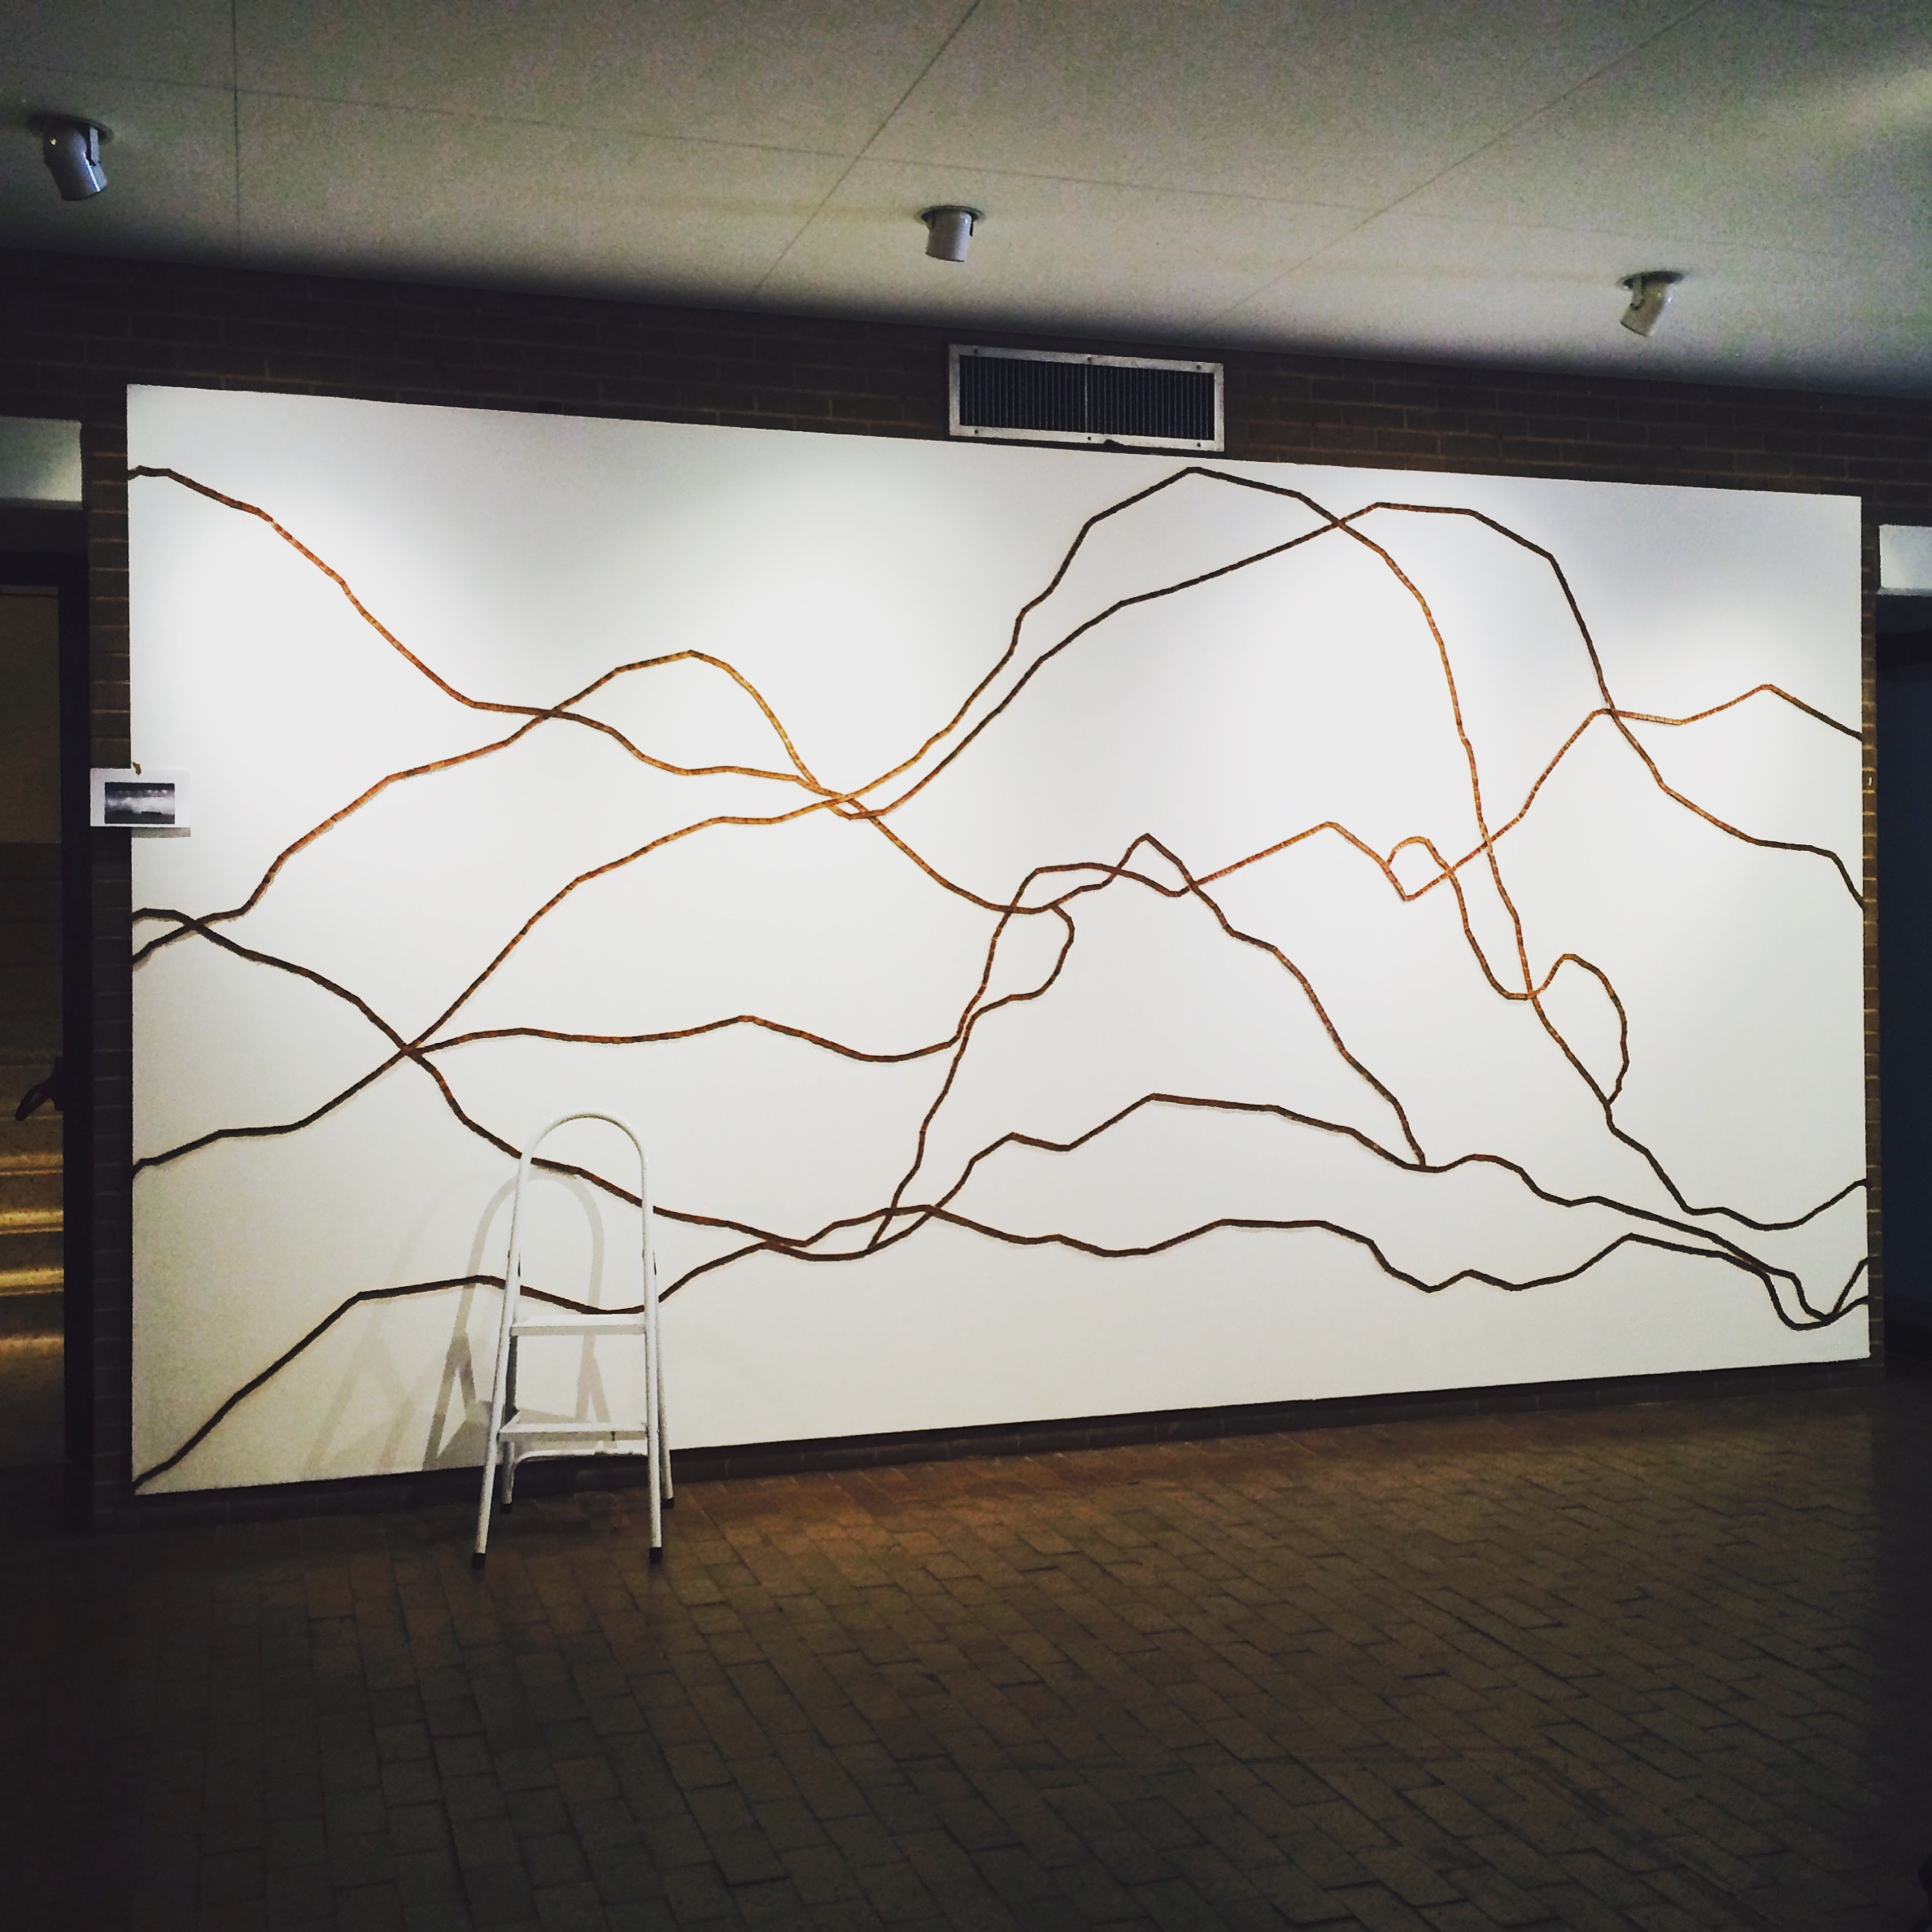 Re-installation of Ripple Effect for the Amarillo Museum of Art